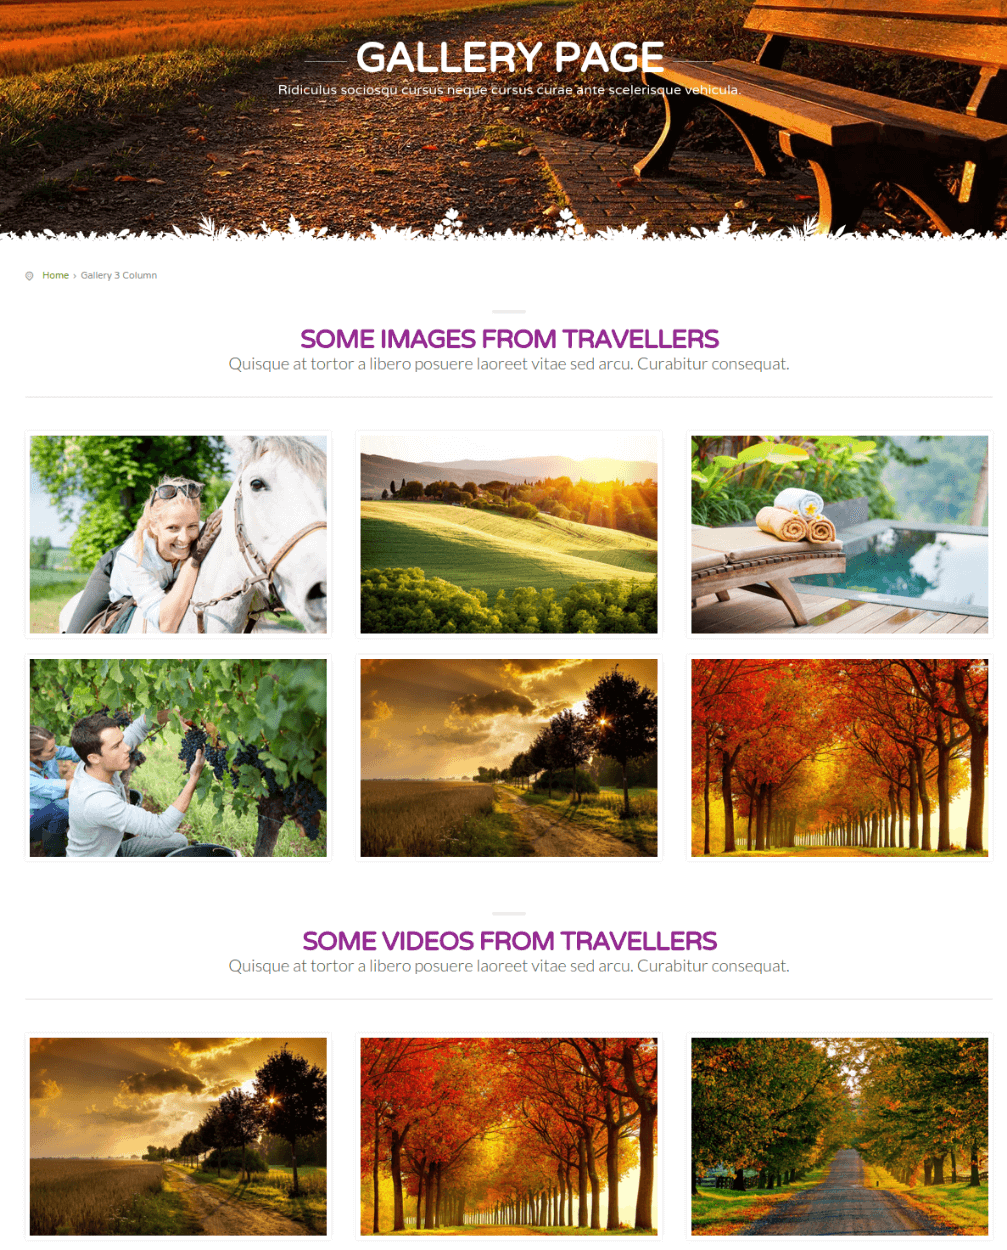 Gallery Page - CountryHolidays